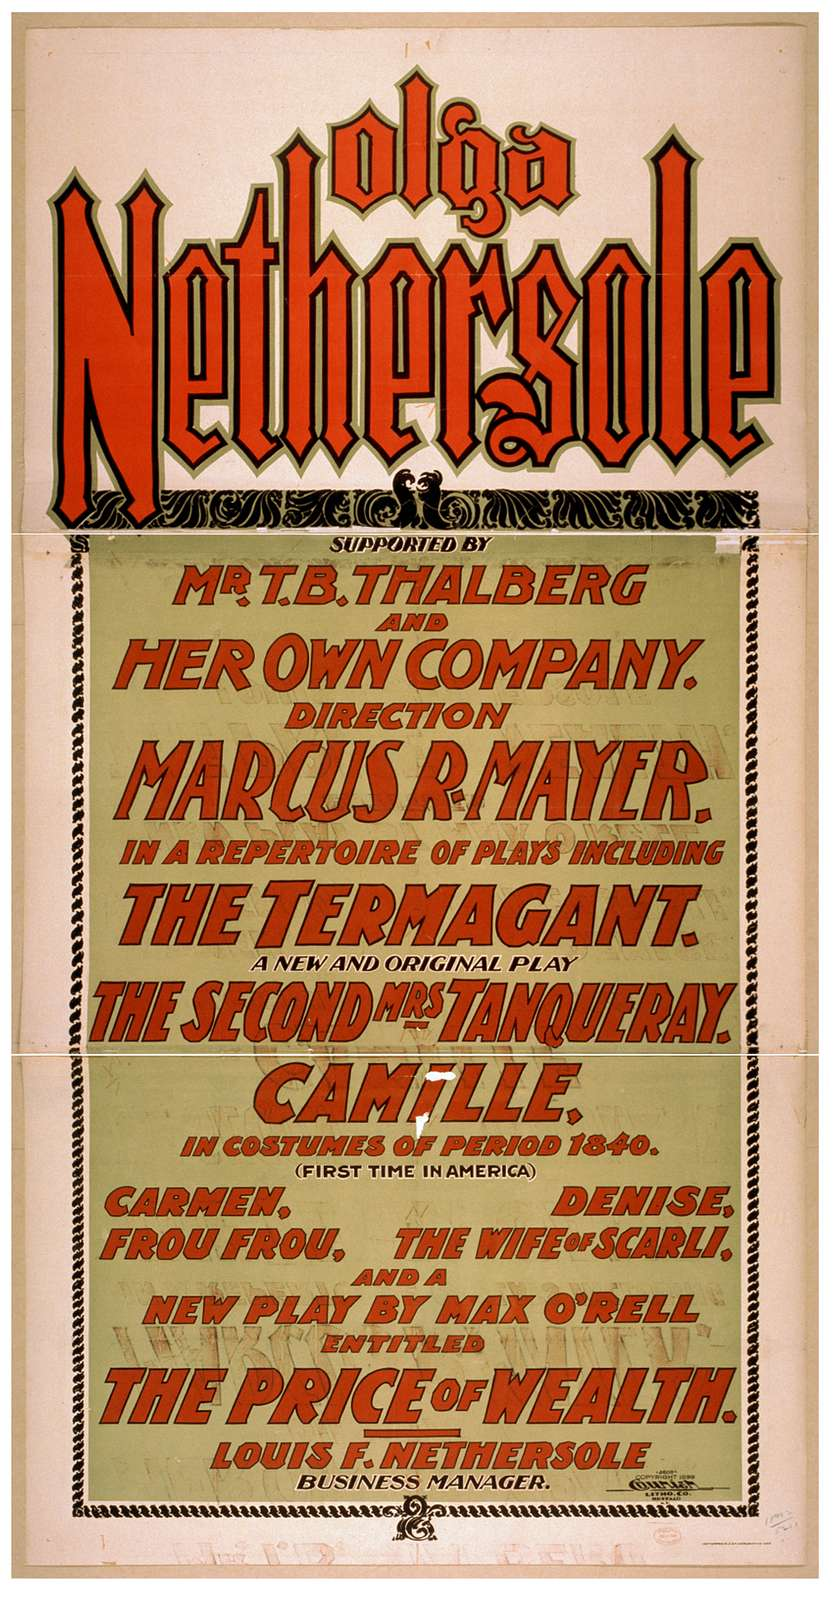 Olga Nethersole in a repertoire of plays ...